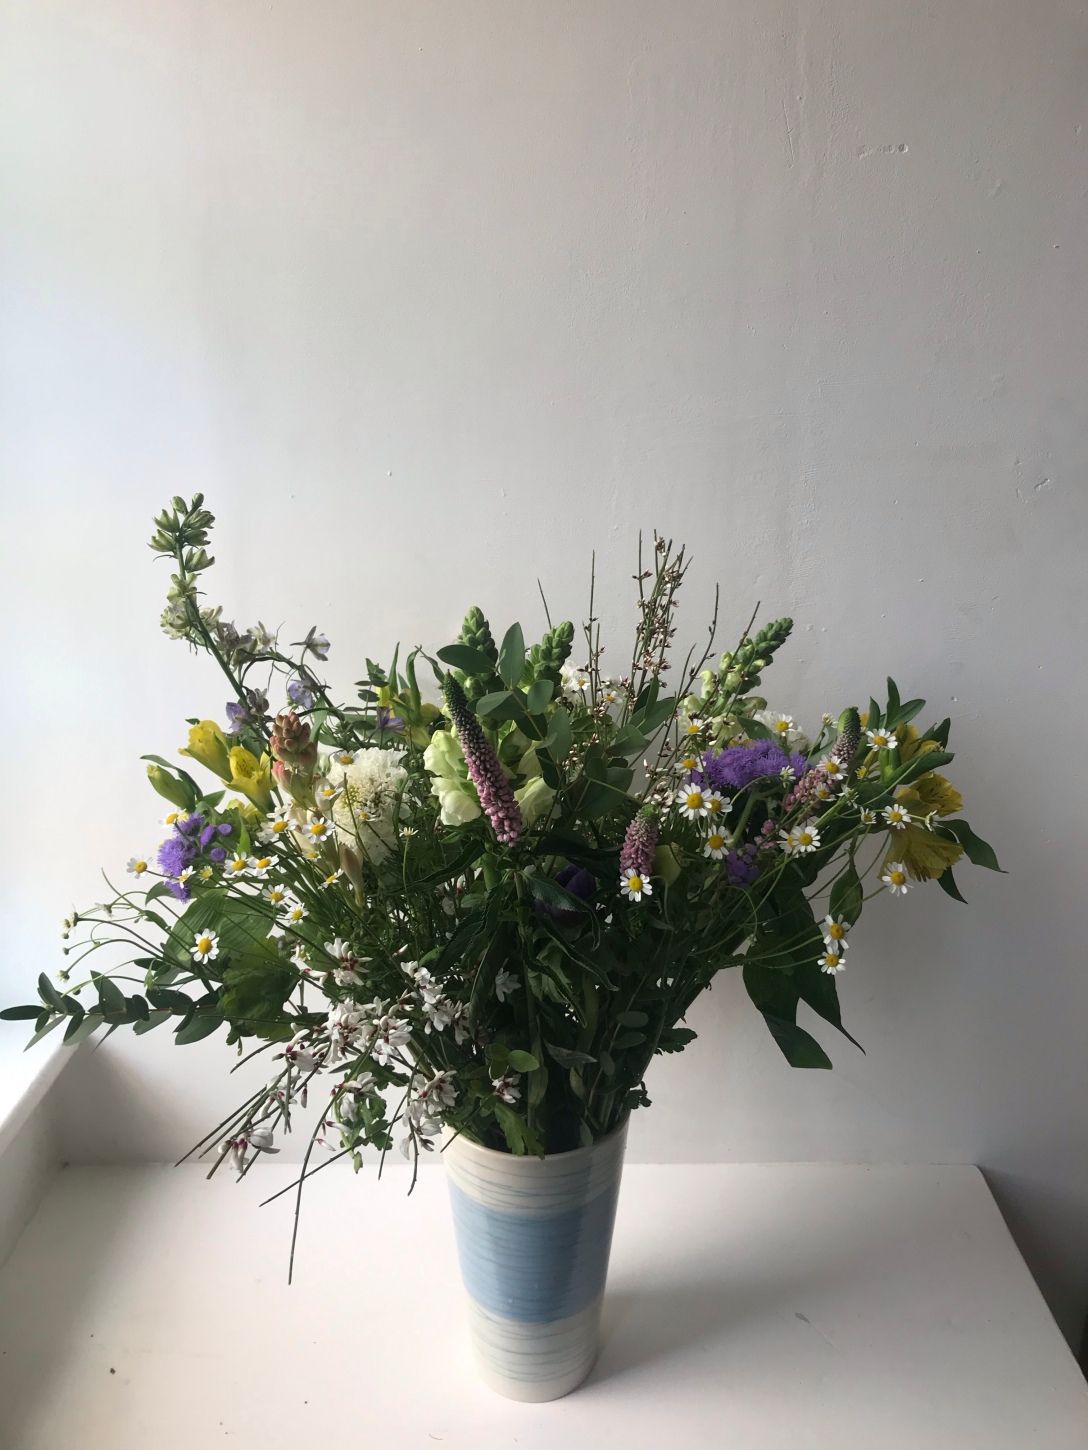 The image is of various different types of flowers in a small blue and white vase